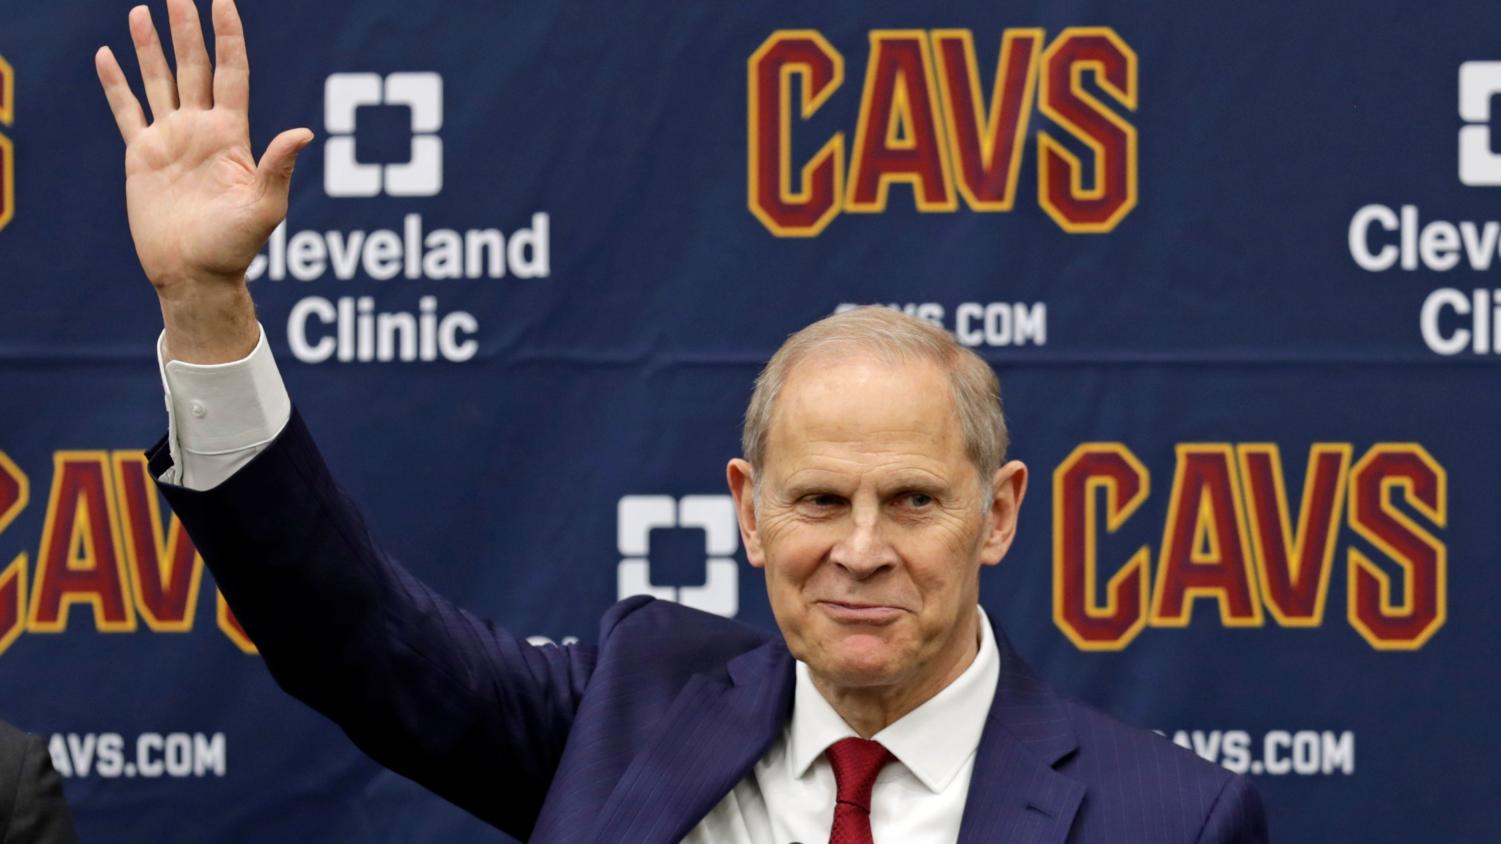 John Beilein has been named the newest coach for the Cleveland Cavaliers